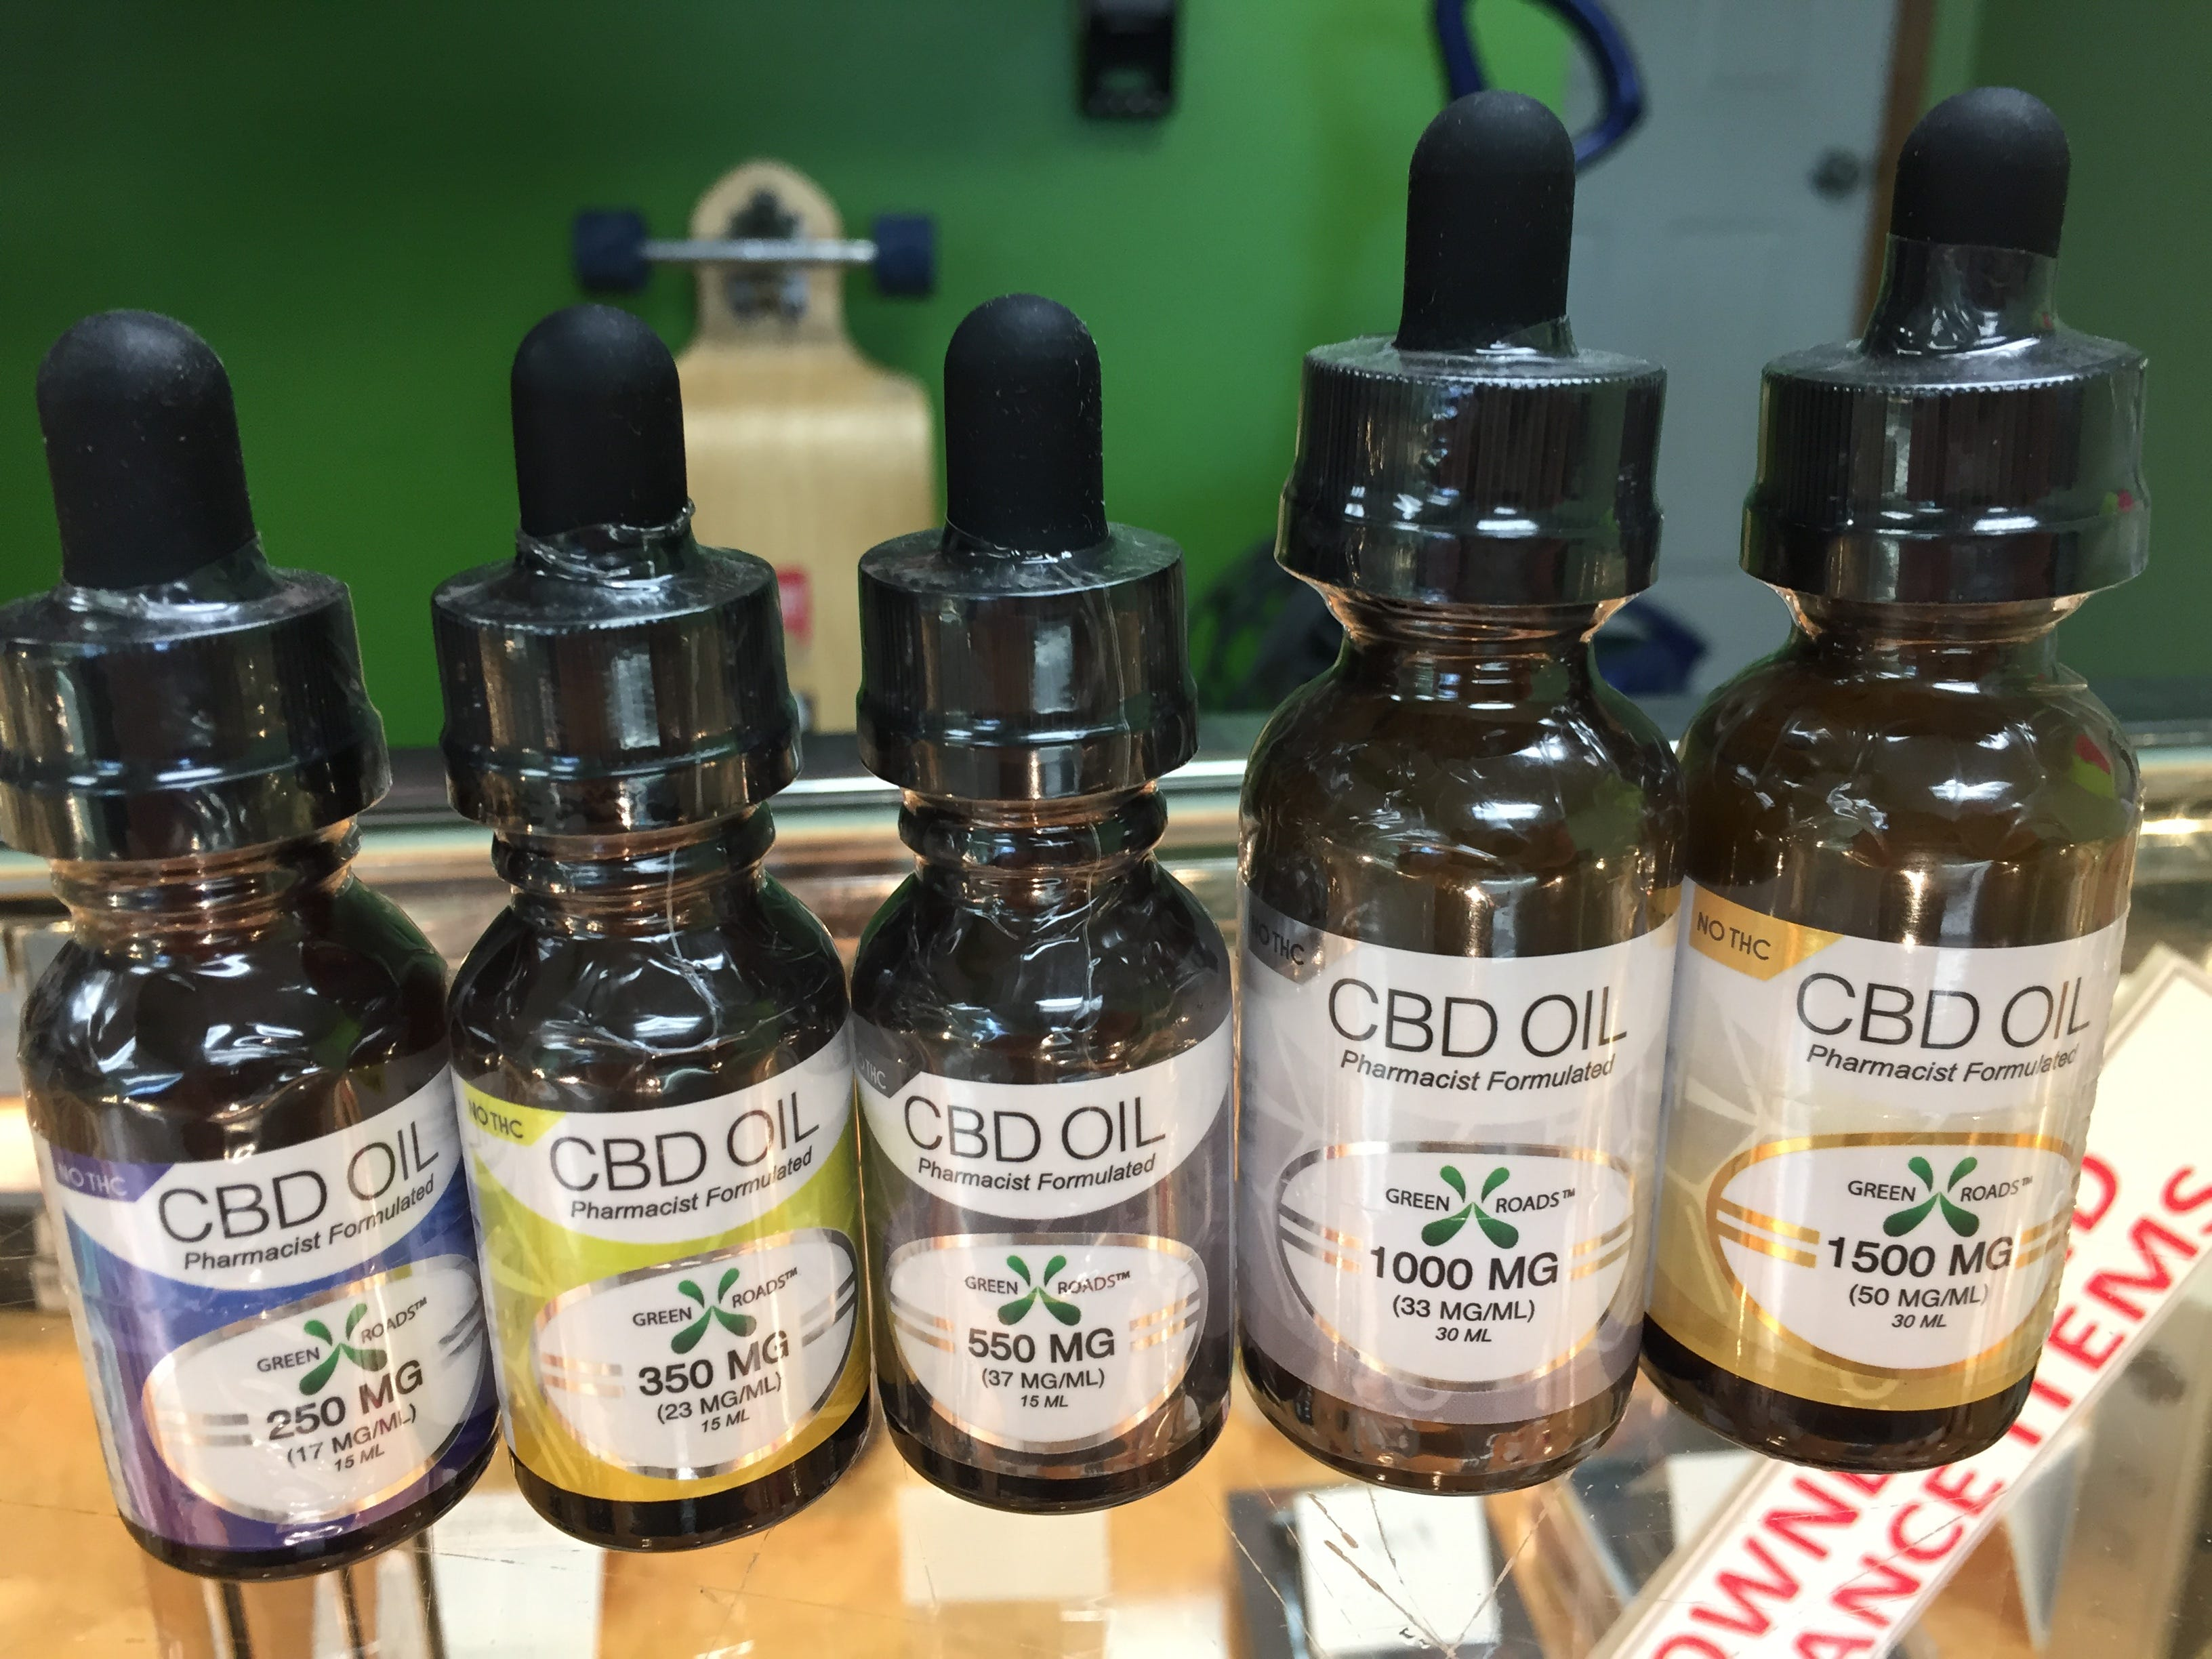 WILL MY INSURANCE COVER CBD OIL TINCTURES?